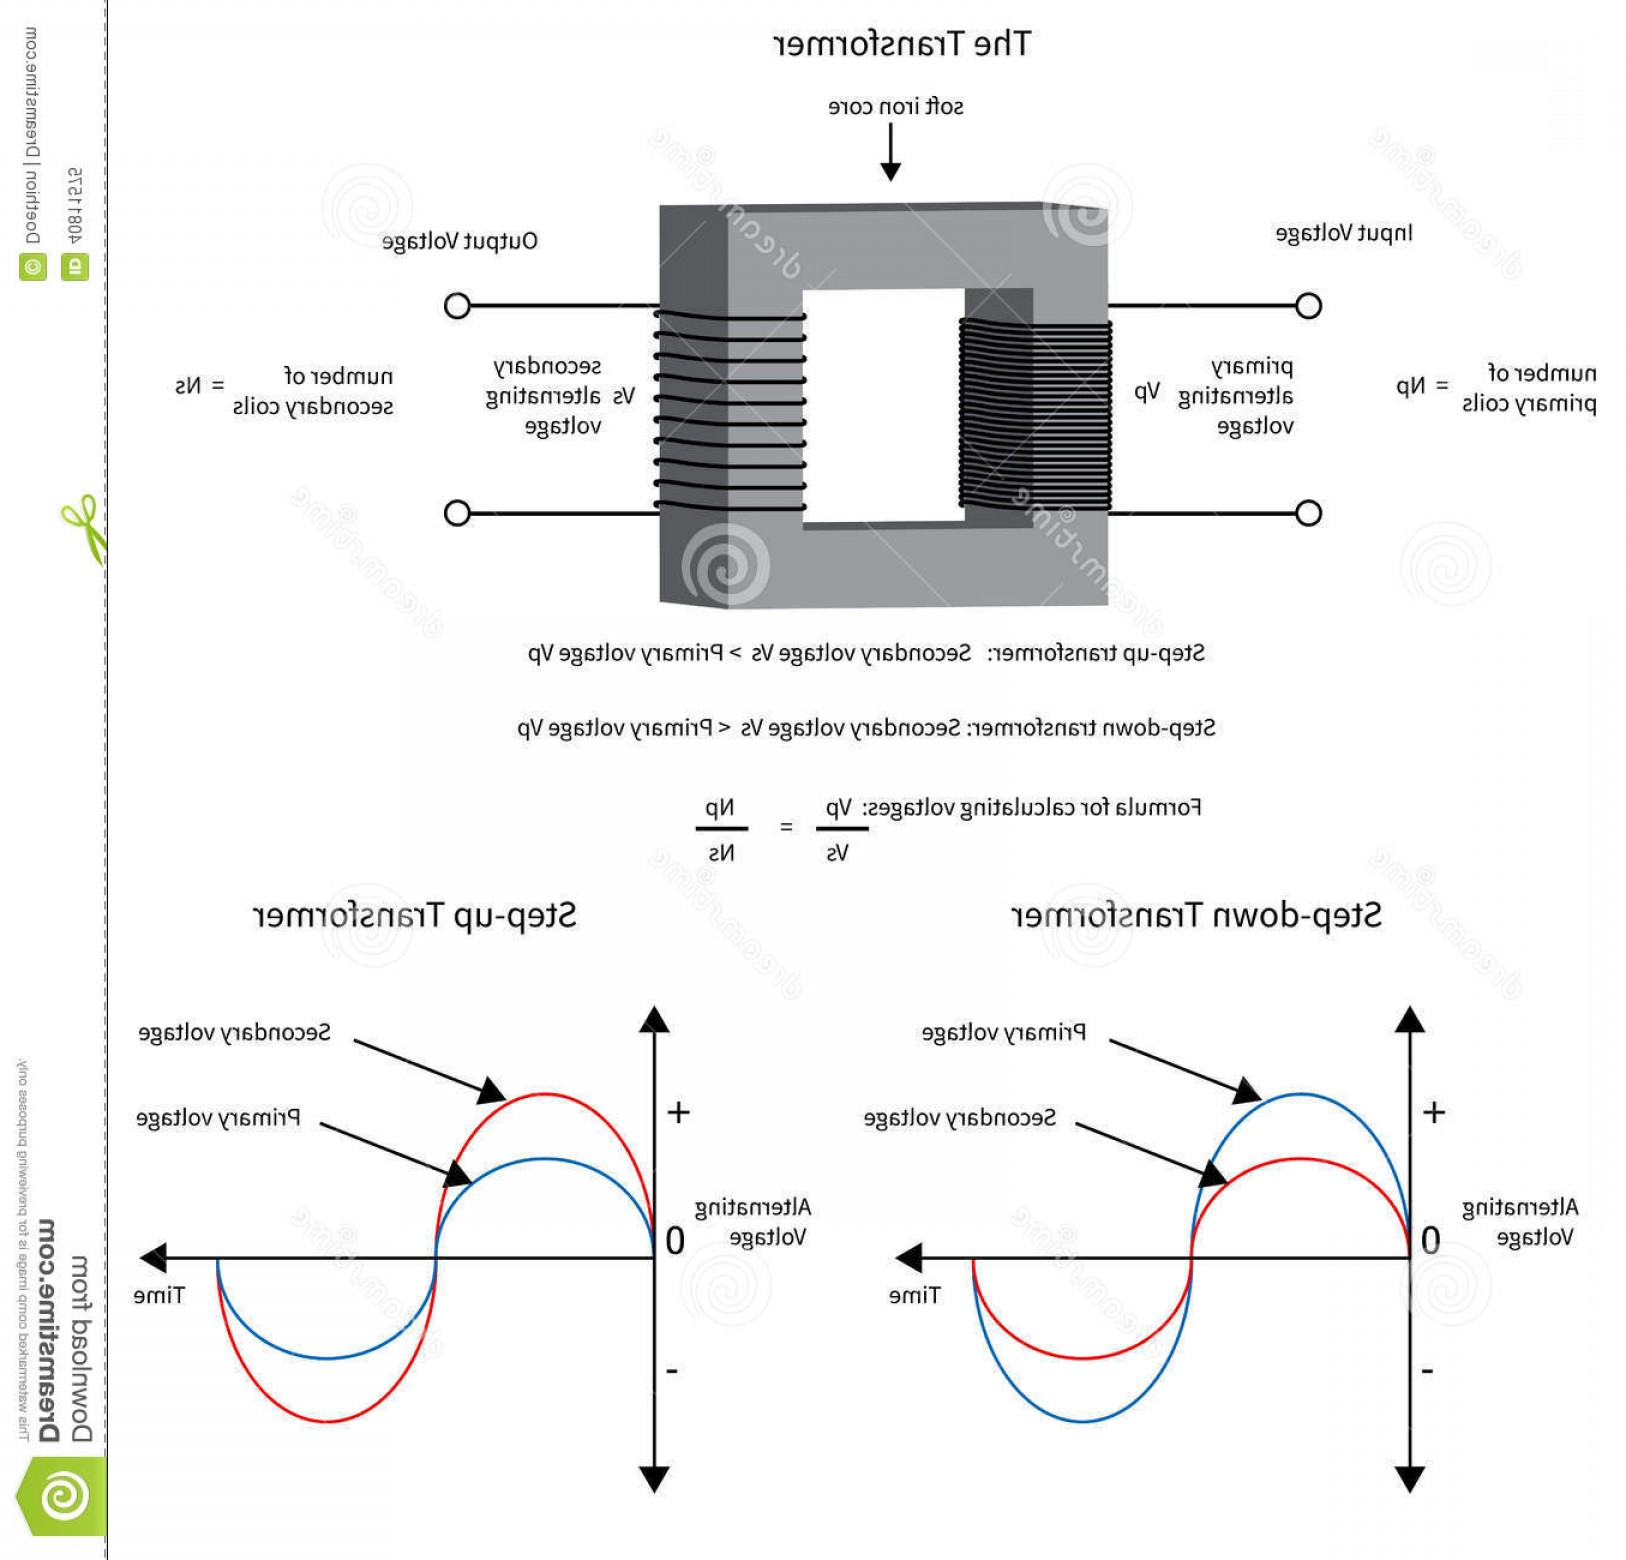 Transformer Vector Diagrams: Royalty Free Stock Photo Diagram To Show How Electrical Transformer Changes Voltage Works Including Equation Calculating Voltages Image